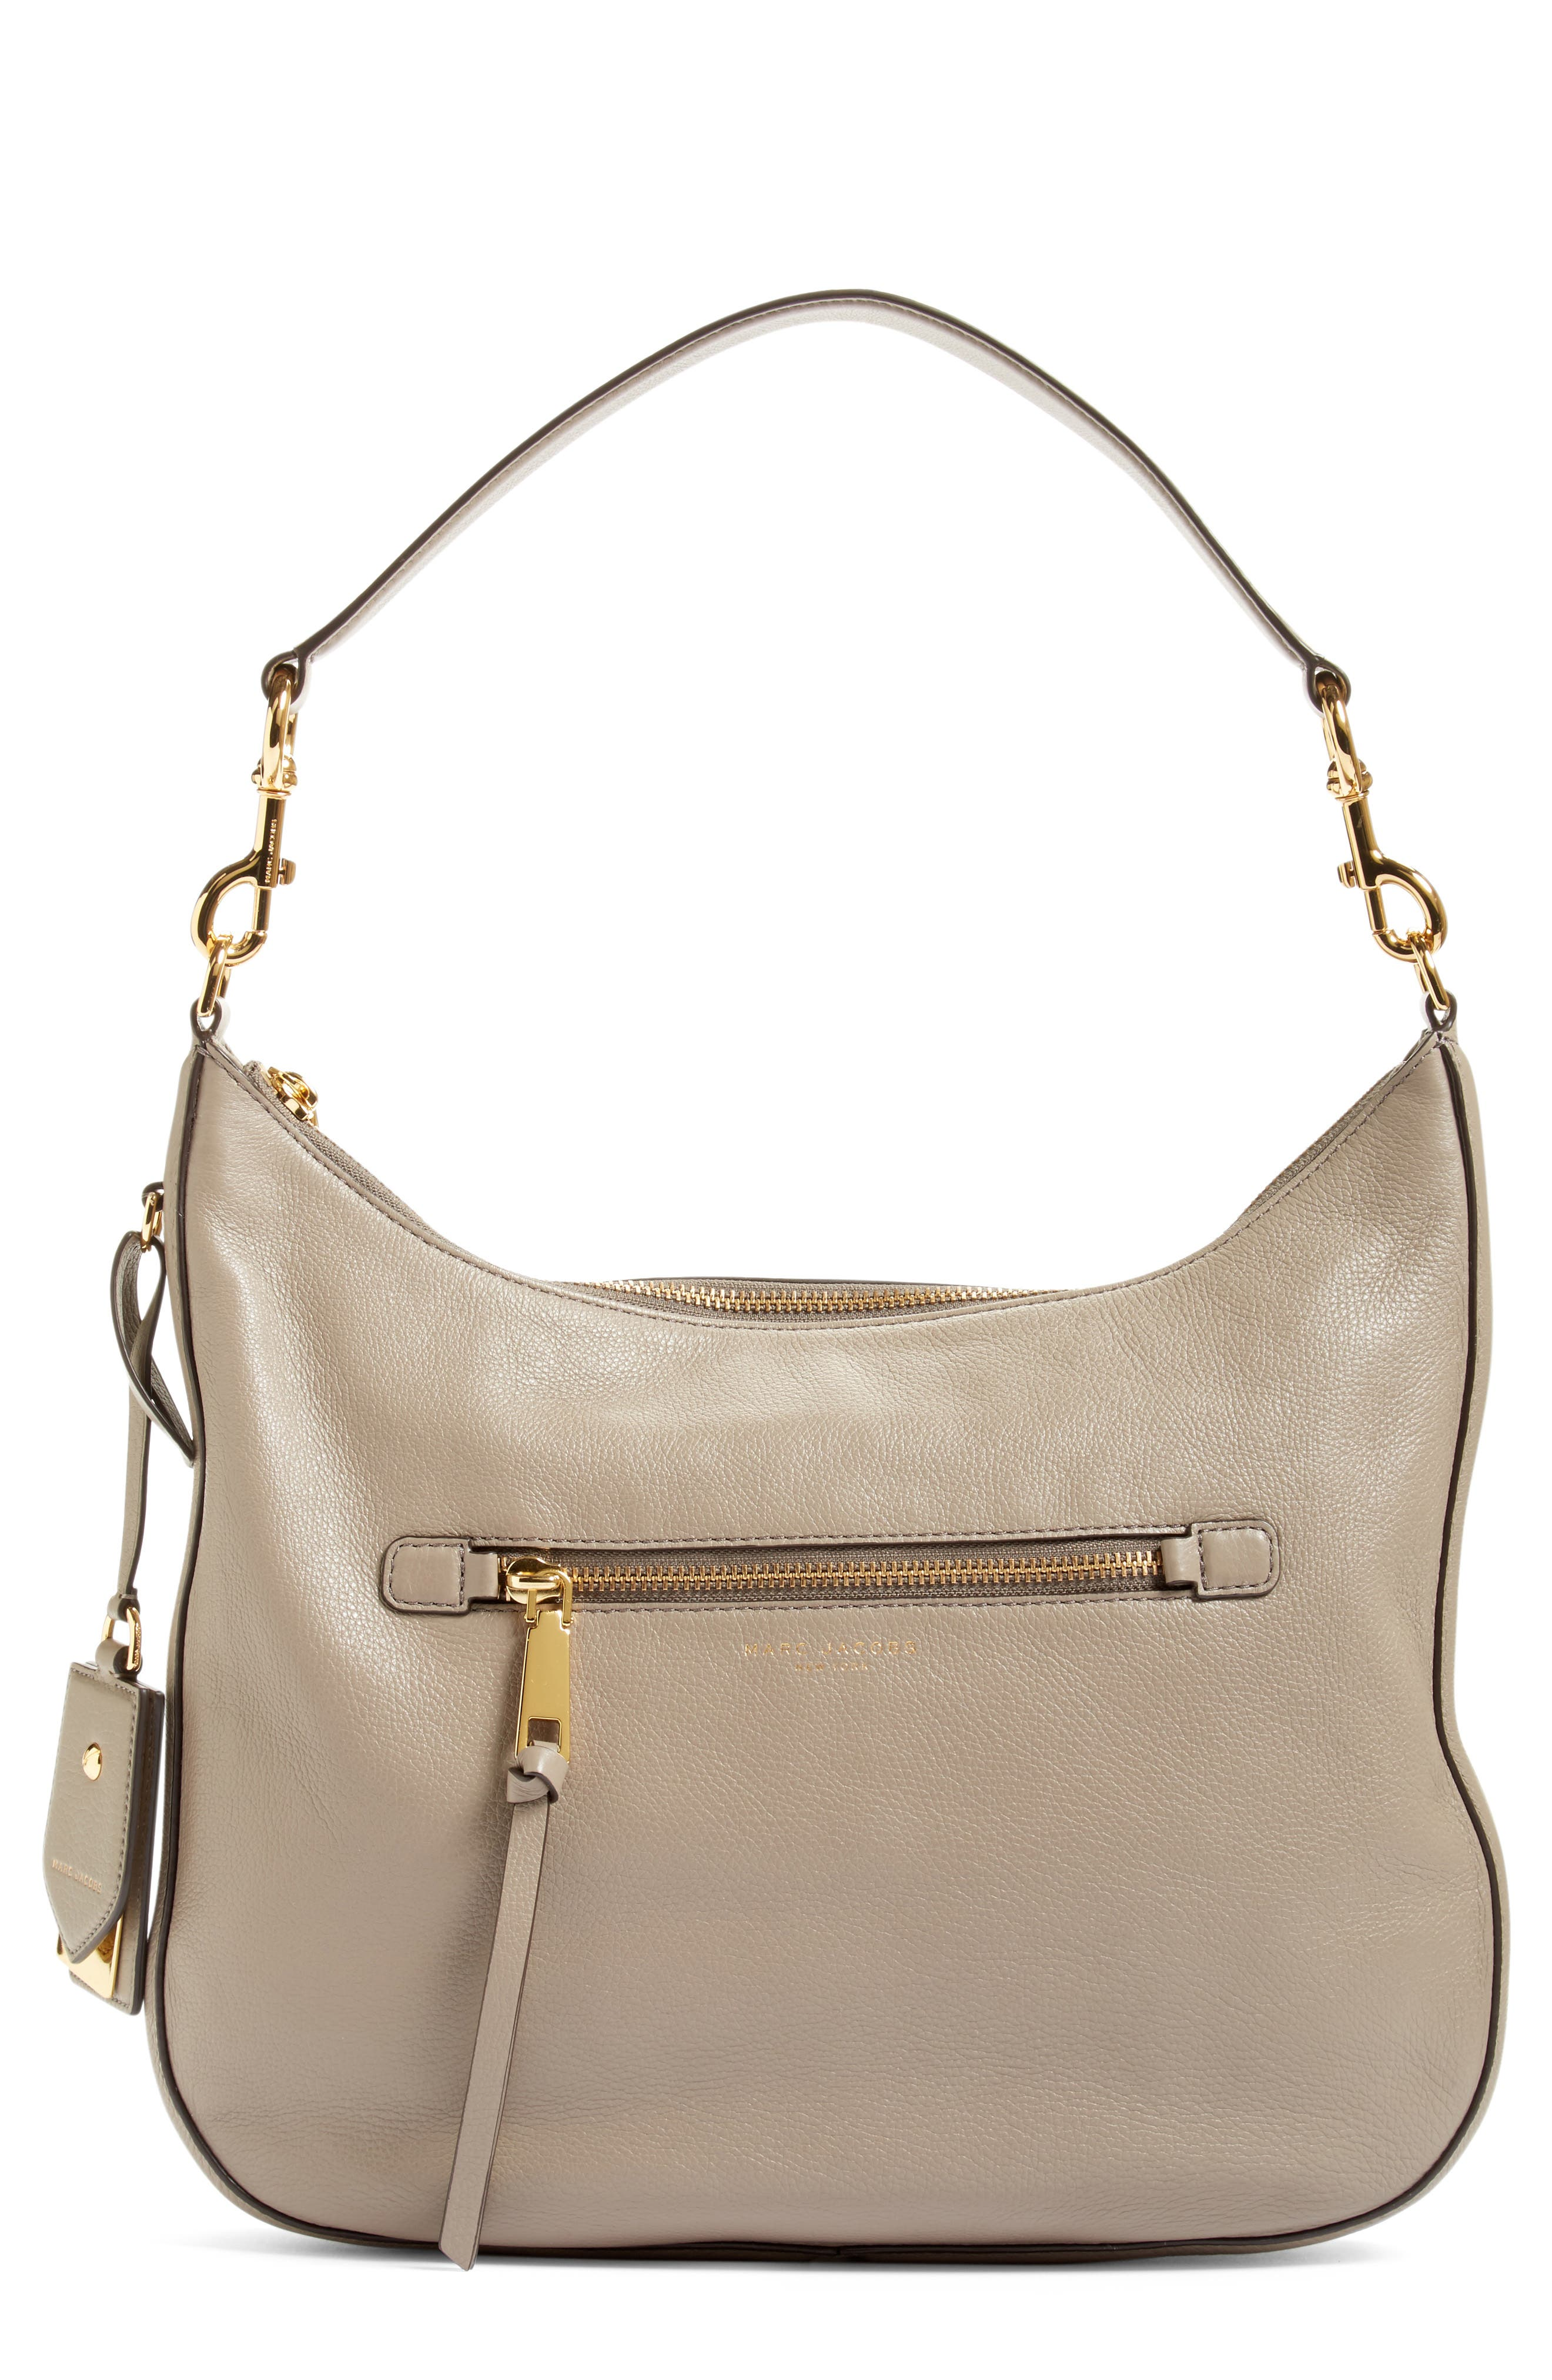 Image of Marc Jacobs Recruit Leather Hobo